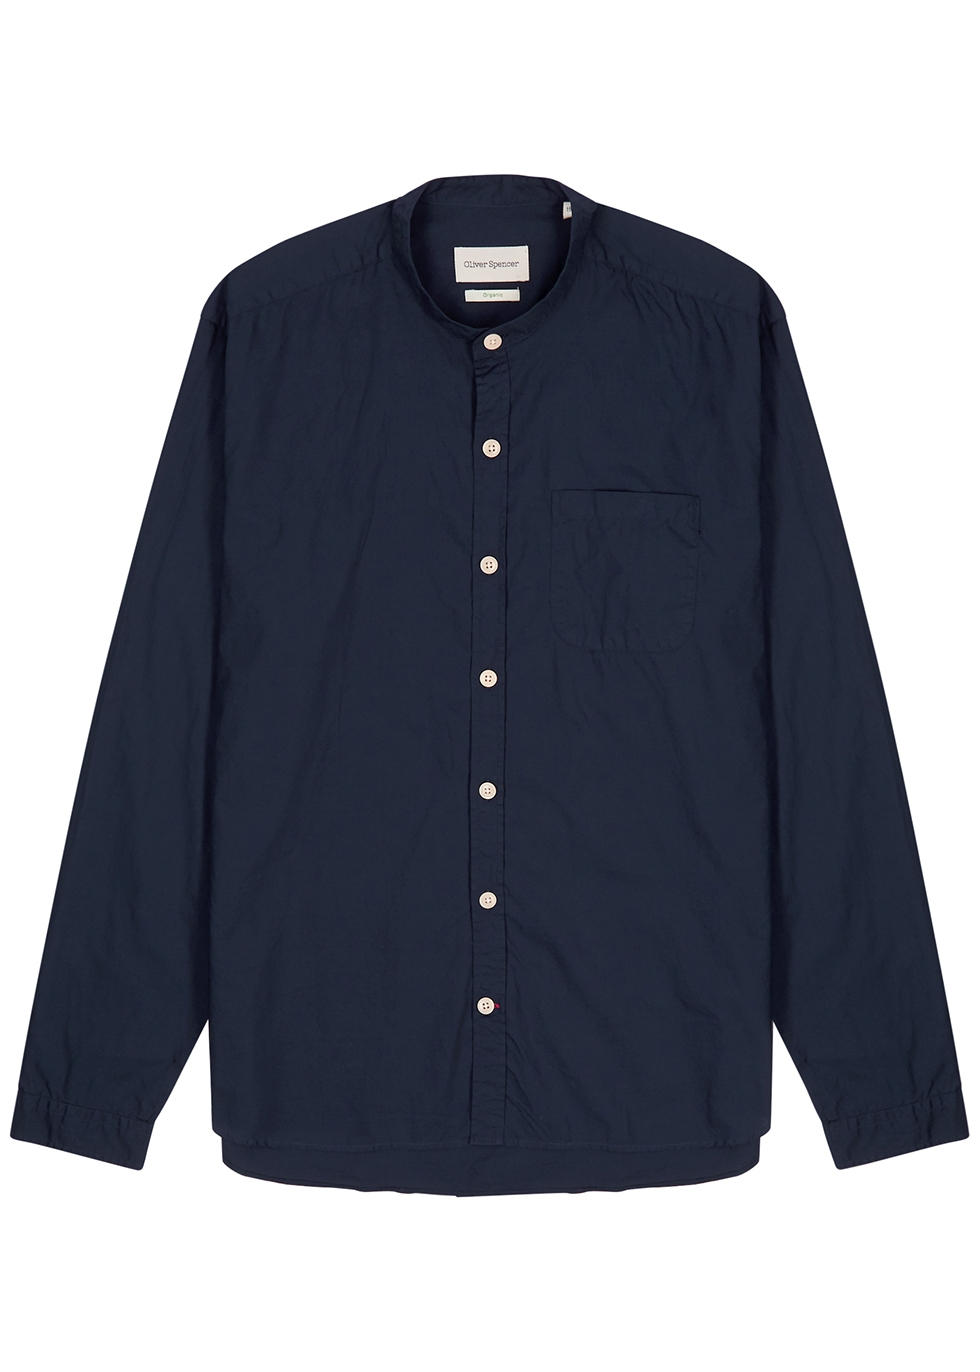 Abbott navy cotton shirt